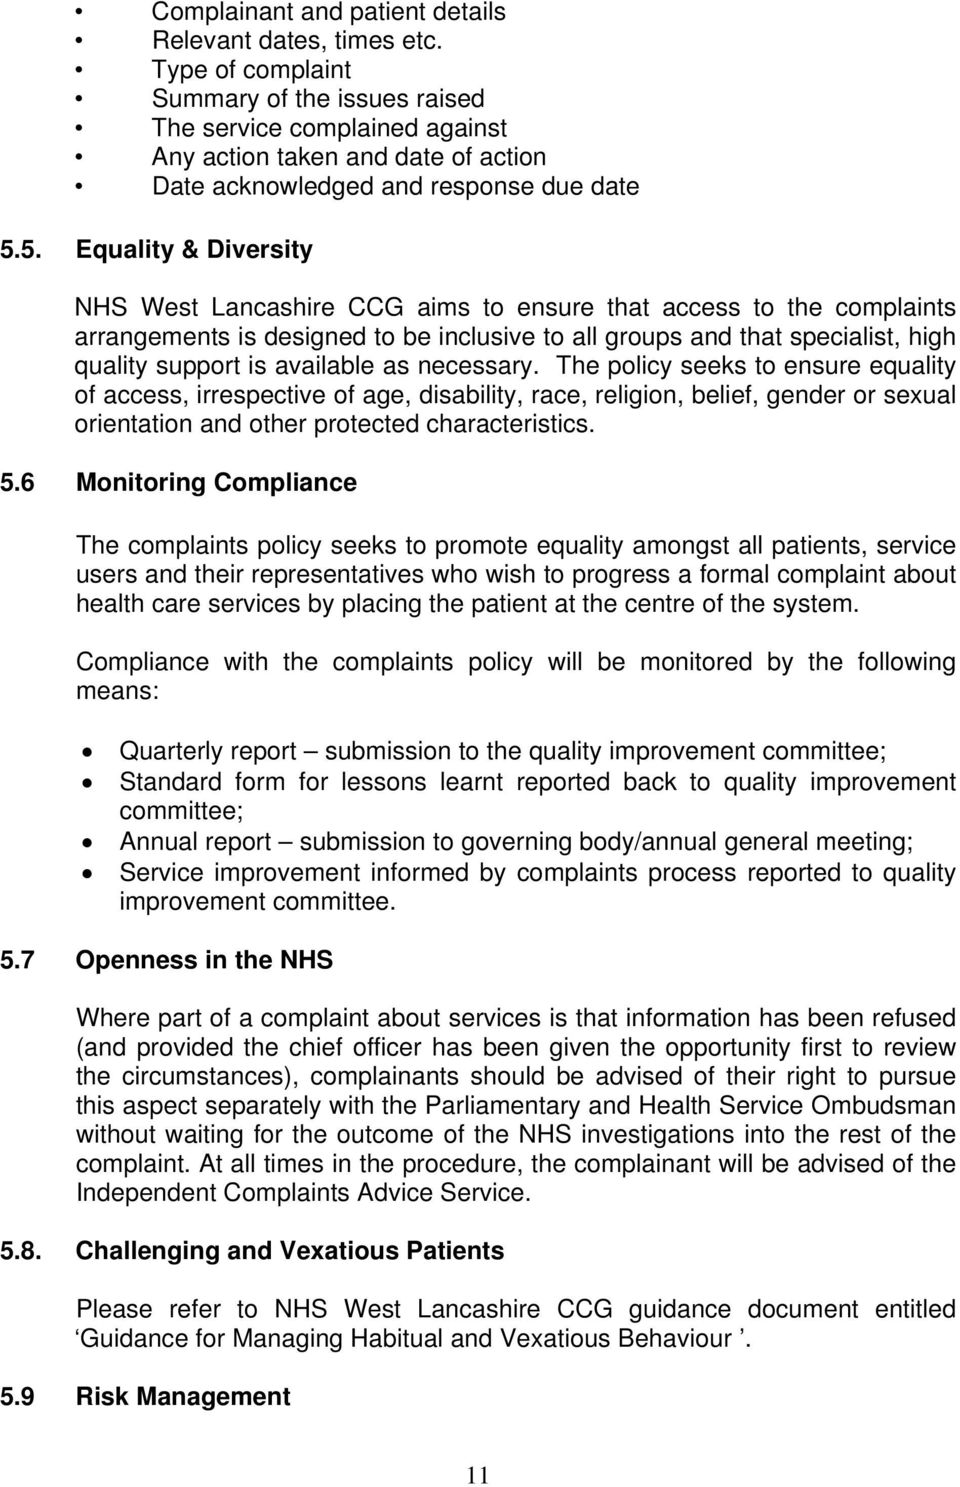 5. Equality & Diversity NHS West Lancashire CCG aims to ensure that access to the complaints arrangements is designed to be inclusive to all groups and that specialist, high quality support is